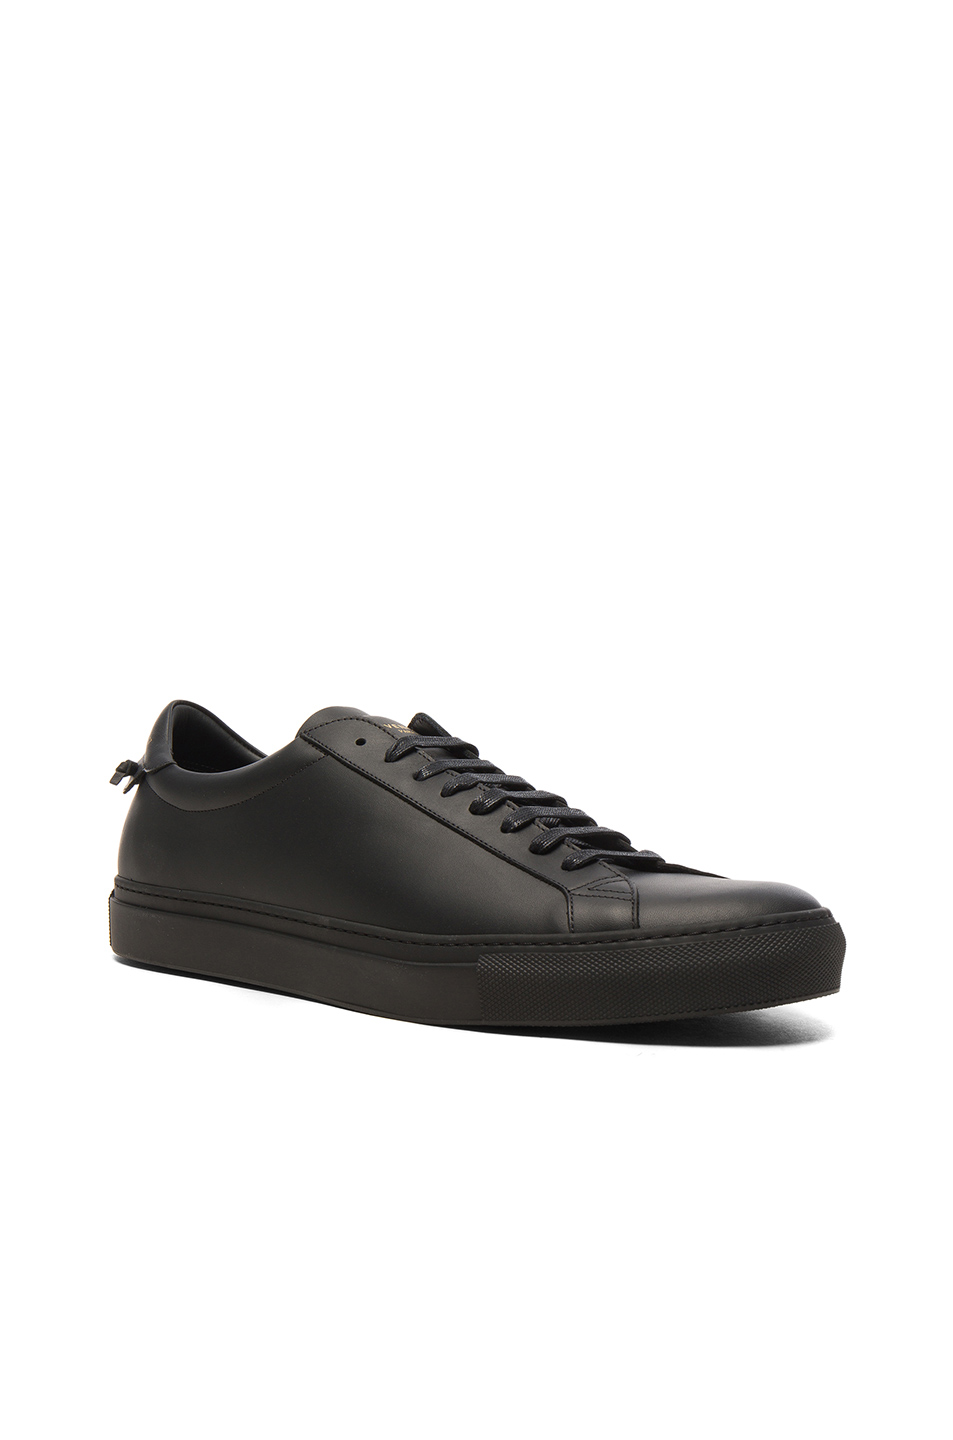 Givenchy Leather Urban Street Low Top Sneakers in Black